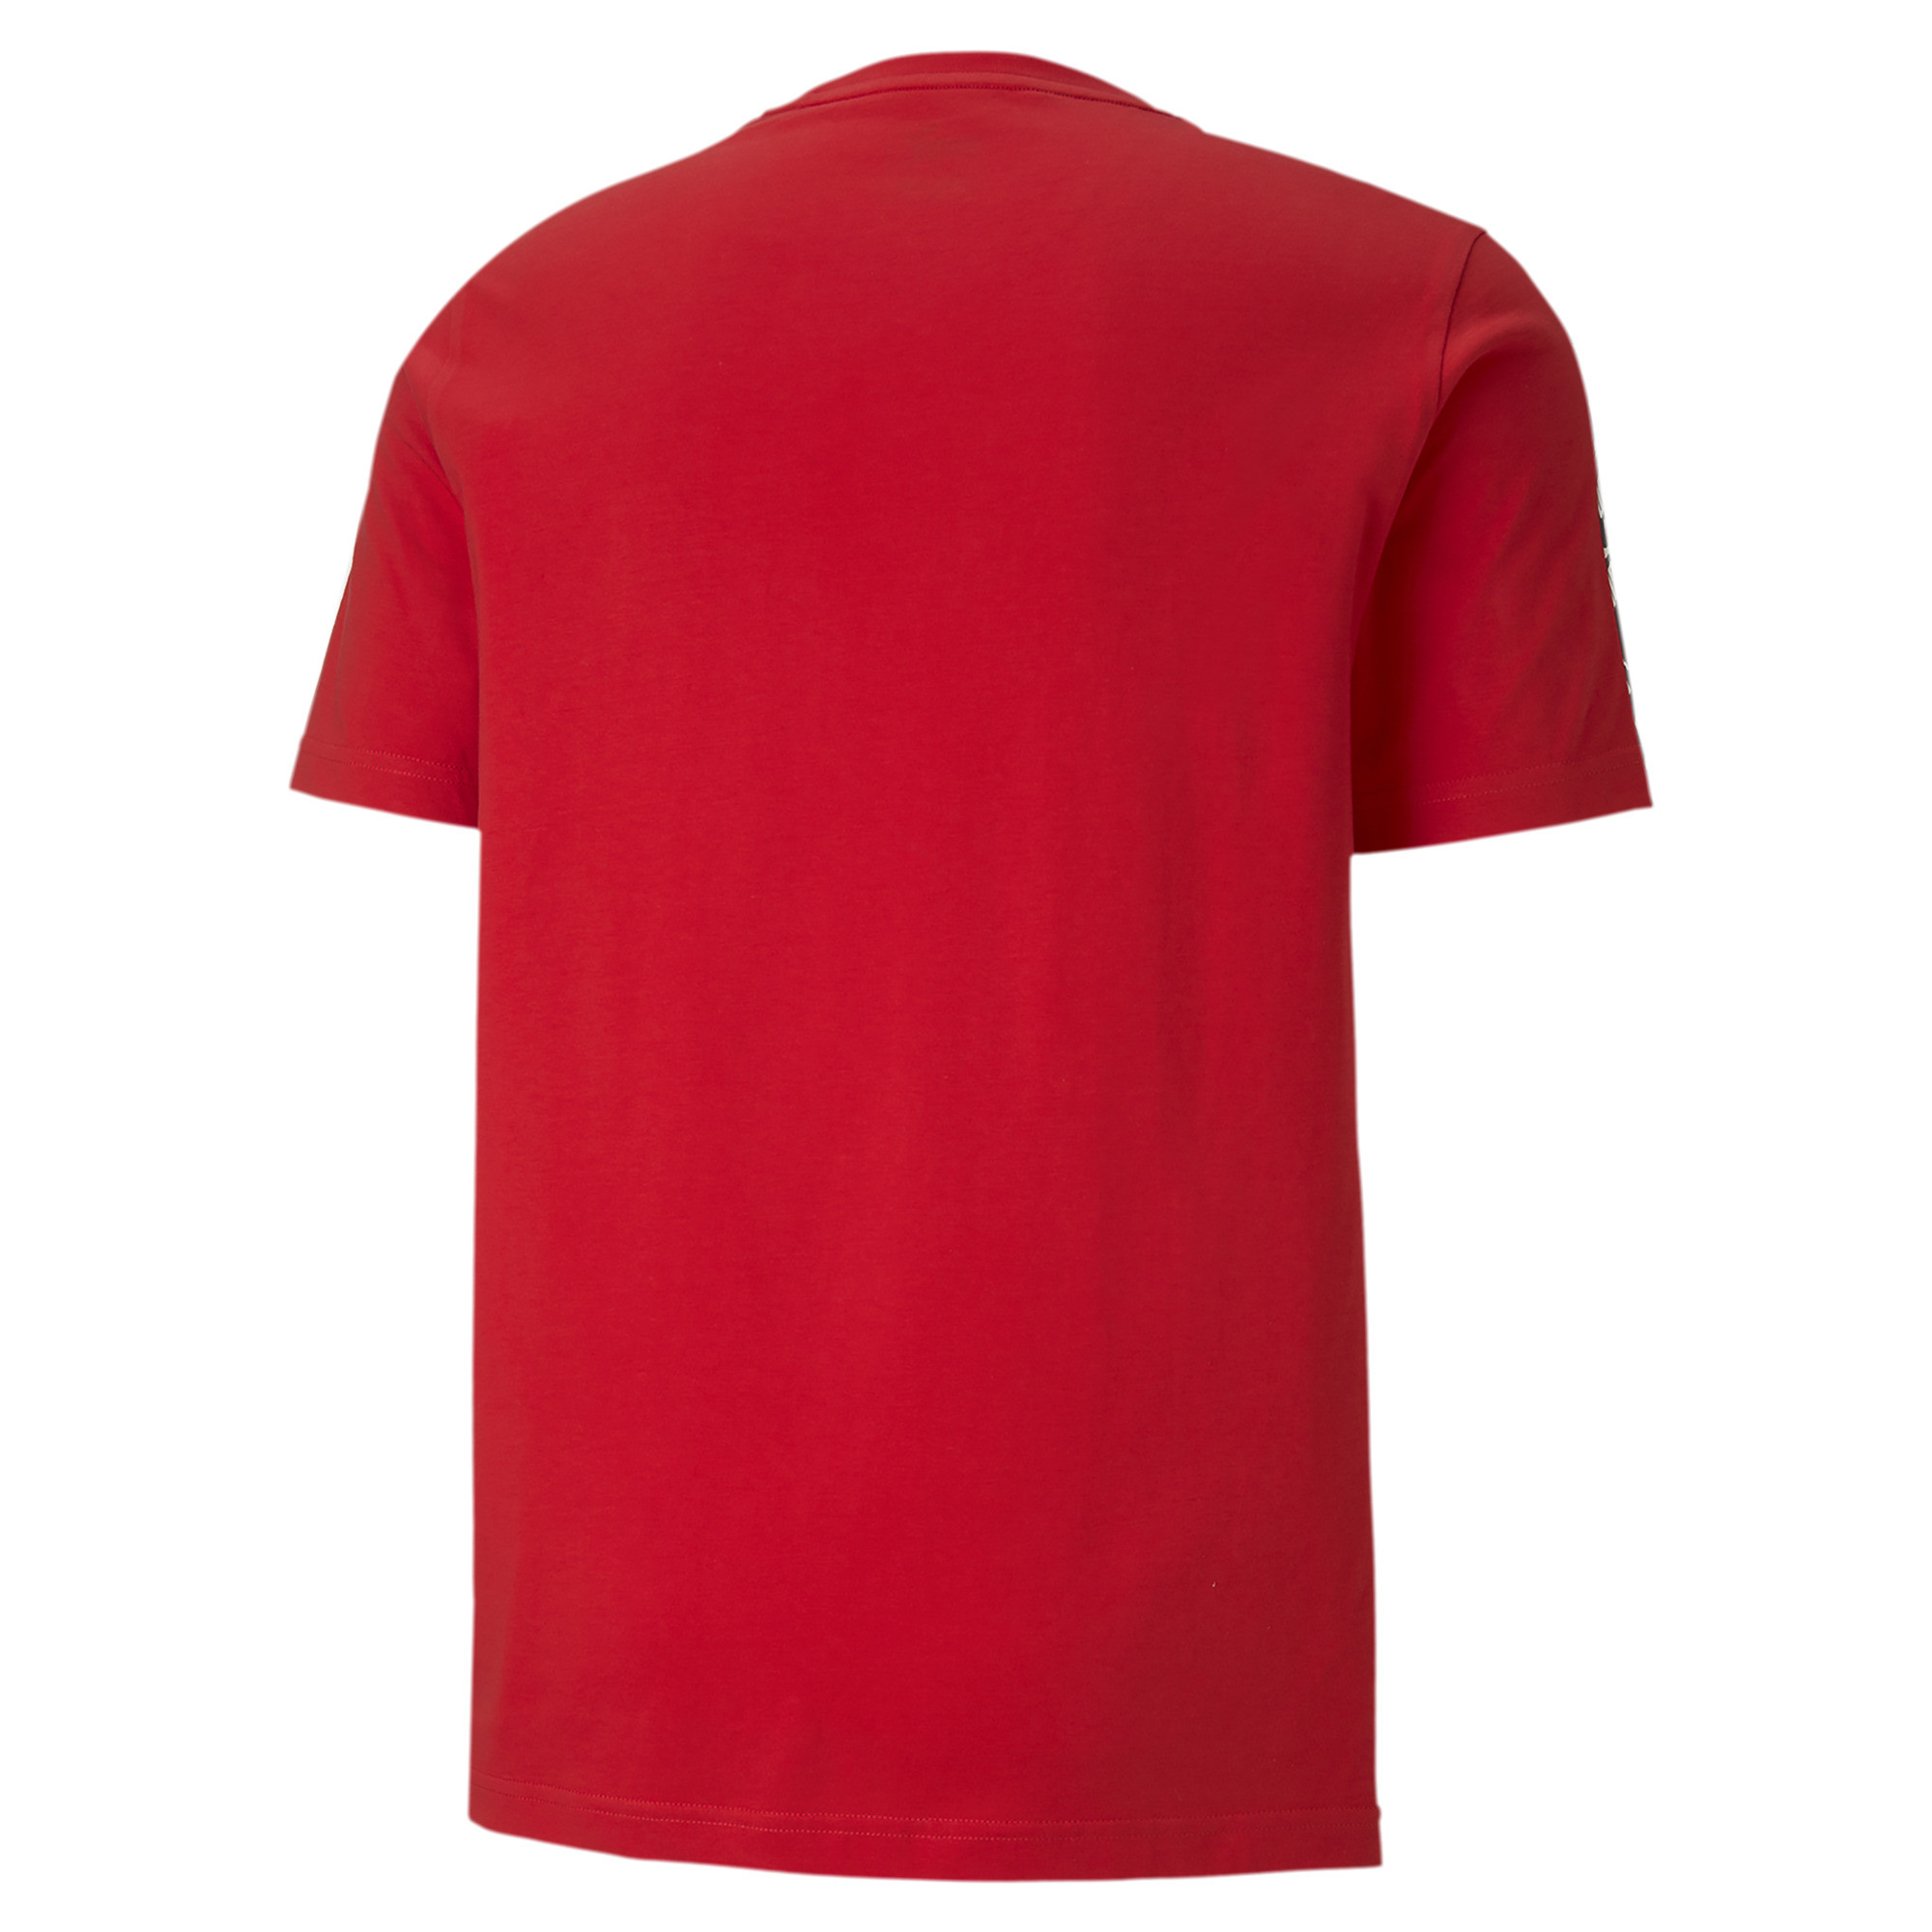 PUMA-Amplified-Men-039-s-Tee-Men-Tee-Basics thumbnail 13